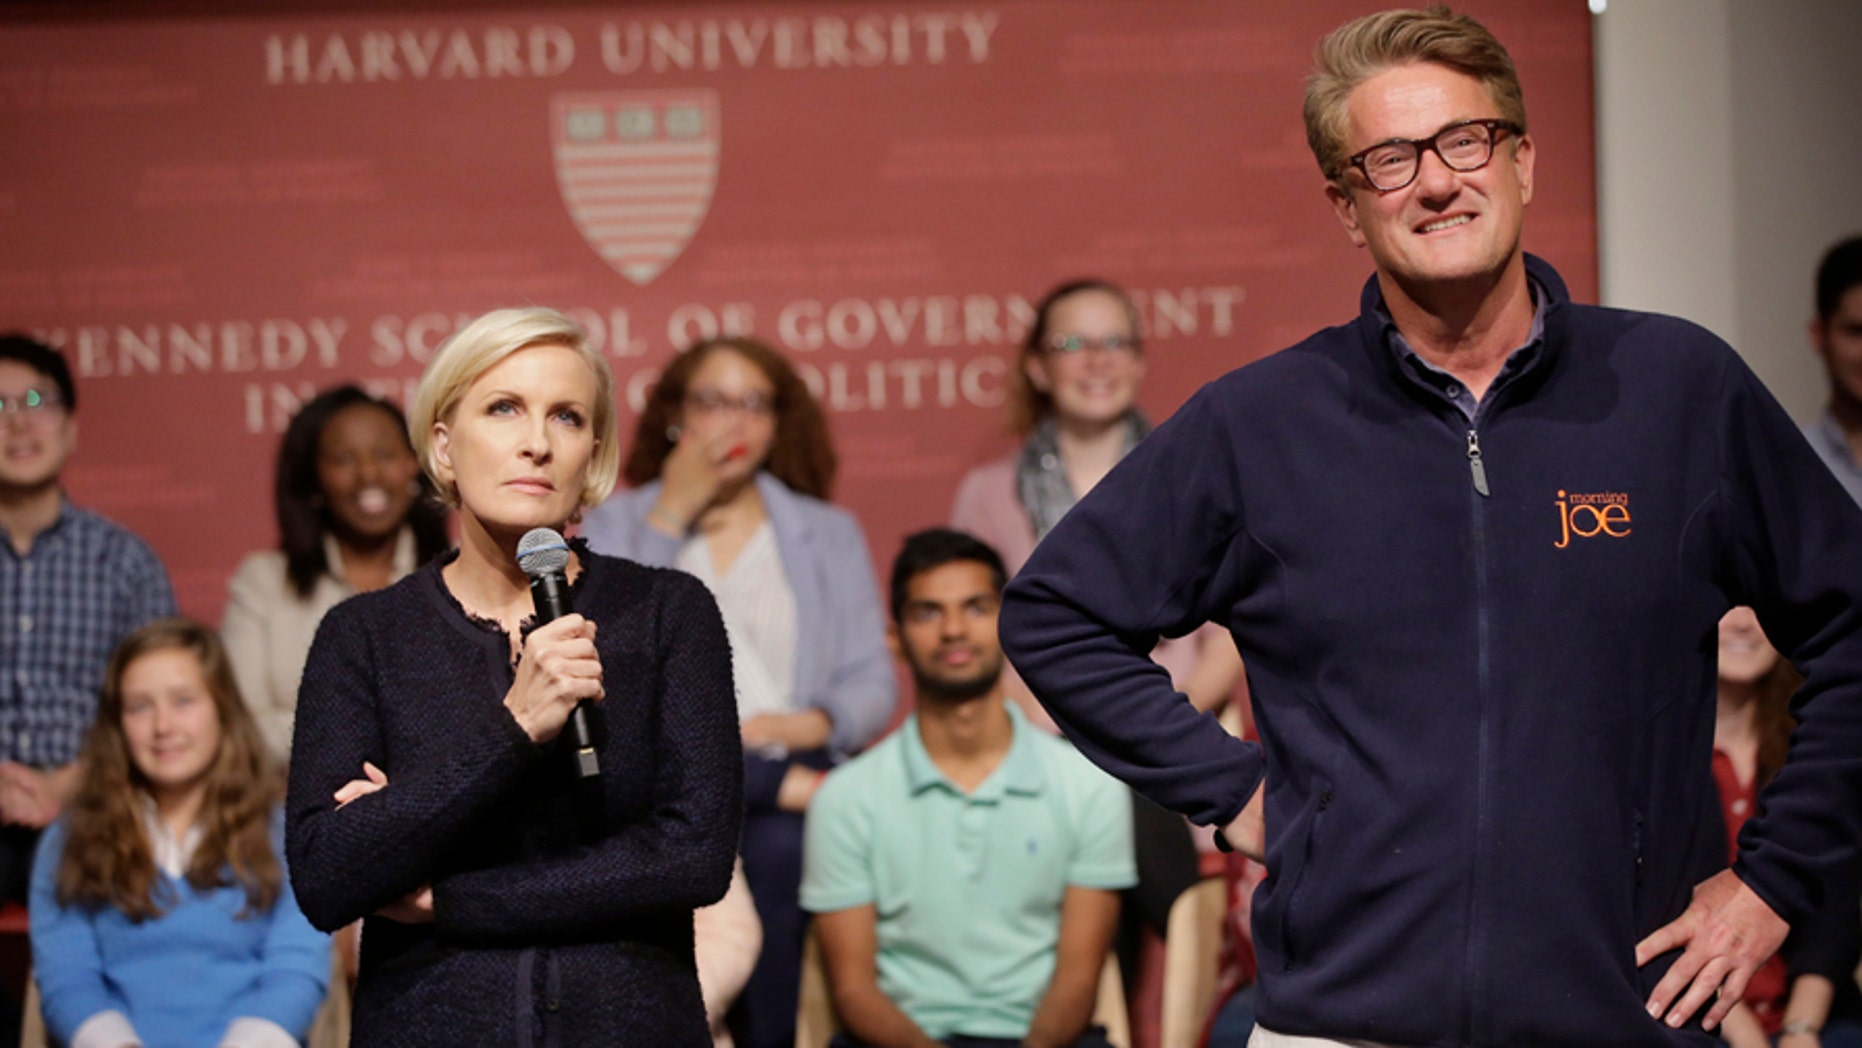 """MSNBC television anchors Mika Brzezinski, left, and Joe Scarborough, right, co-hosts of the show """"Morning Joe,"""" take questions from an audience, Wednesday, Oct. 11, 2017, at a forum called Harvard Students Speak Up: A Town Hall on Politics and Public Service, at the John F. Kennedy School of Government, on the campus of Harvard University, in Cambridge, Mass. (AP Photo/Steven Senne)"""